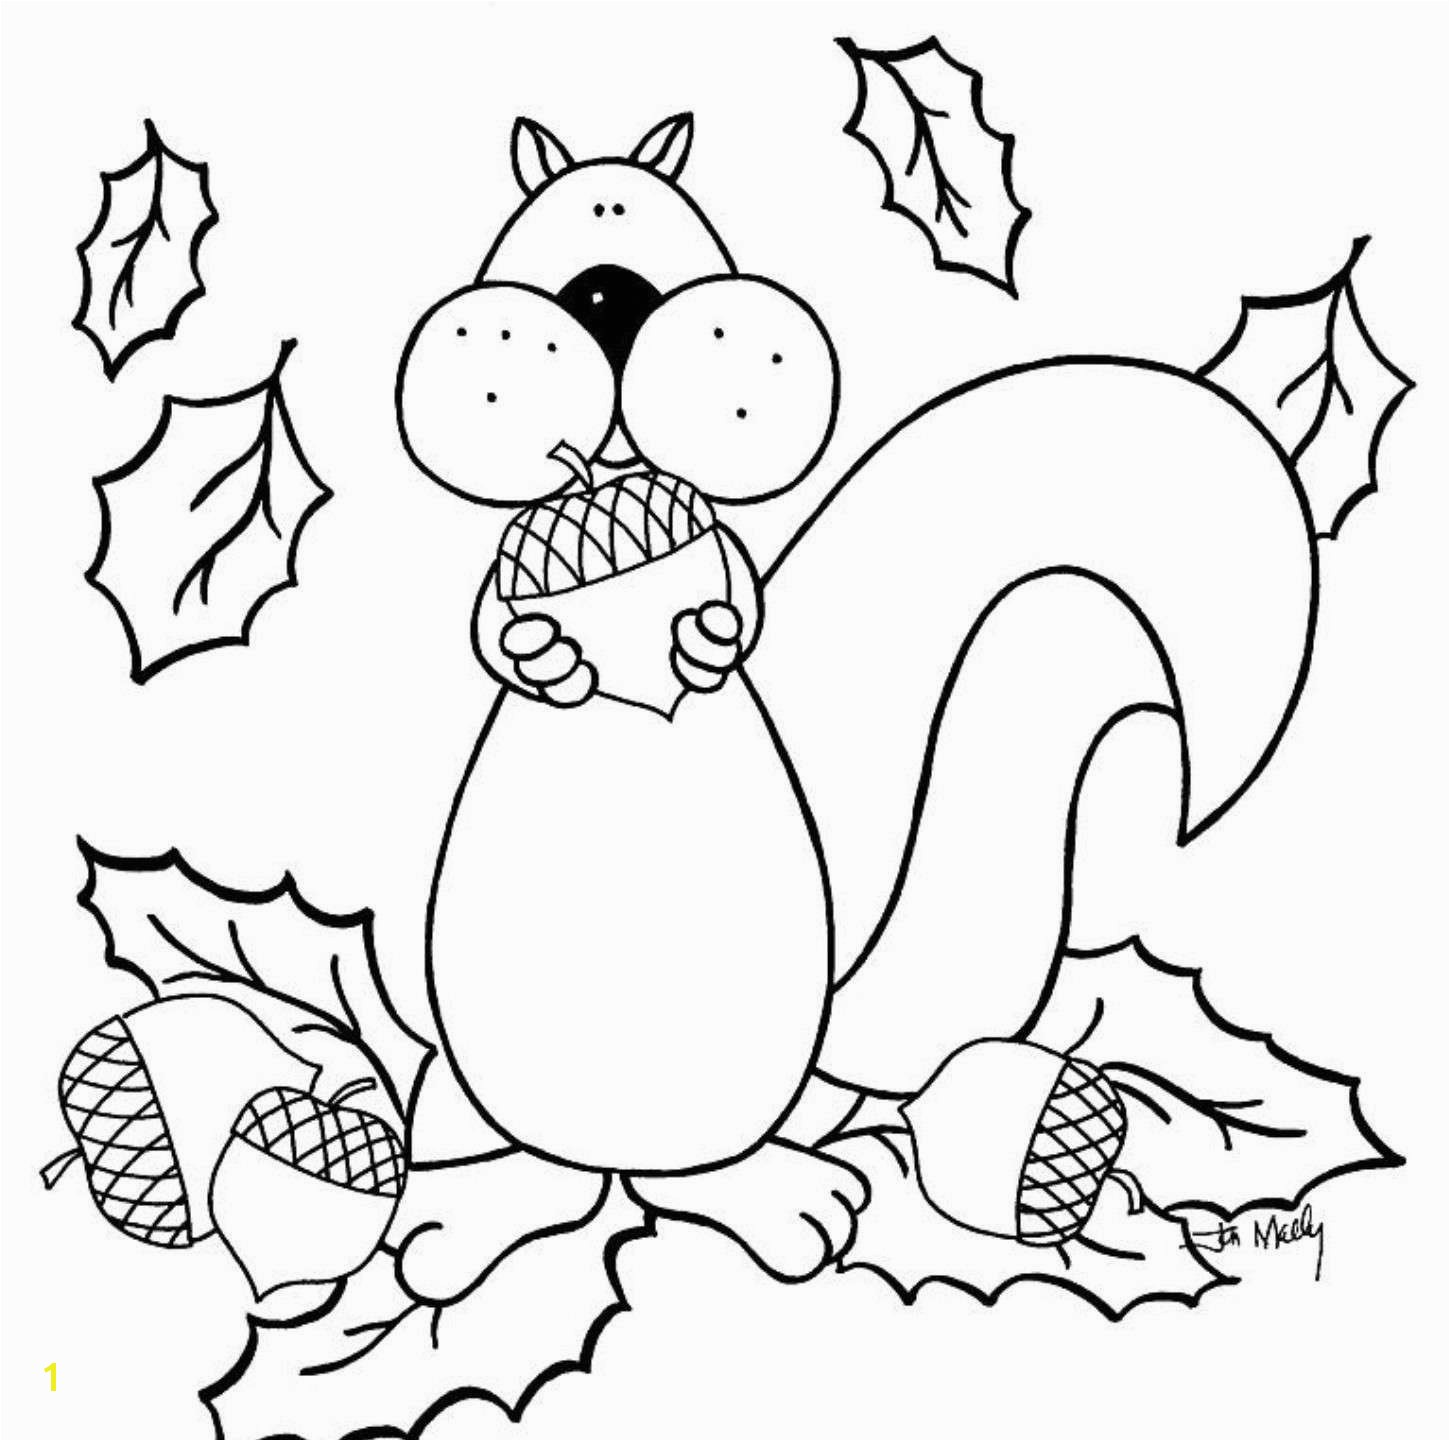 Christian Coloring Pages Lovely Engaging Fall Coloring Pages Printable 26 Kids New 0d Page for